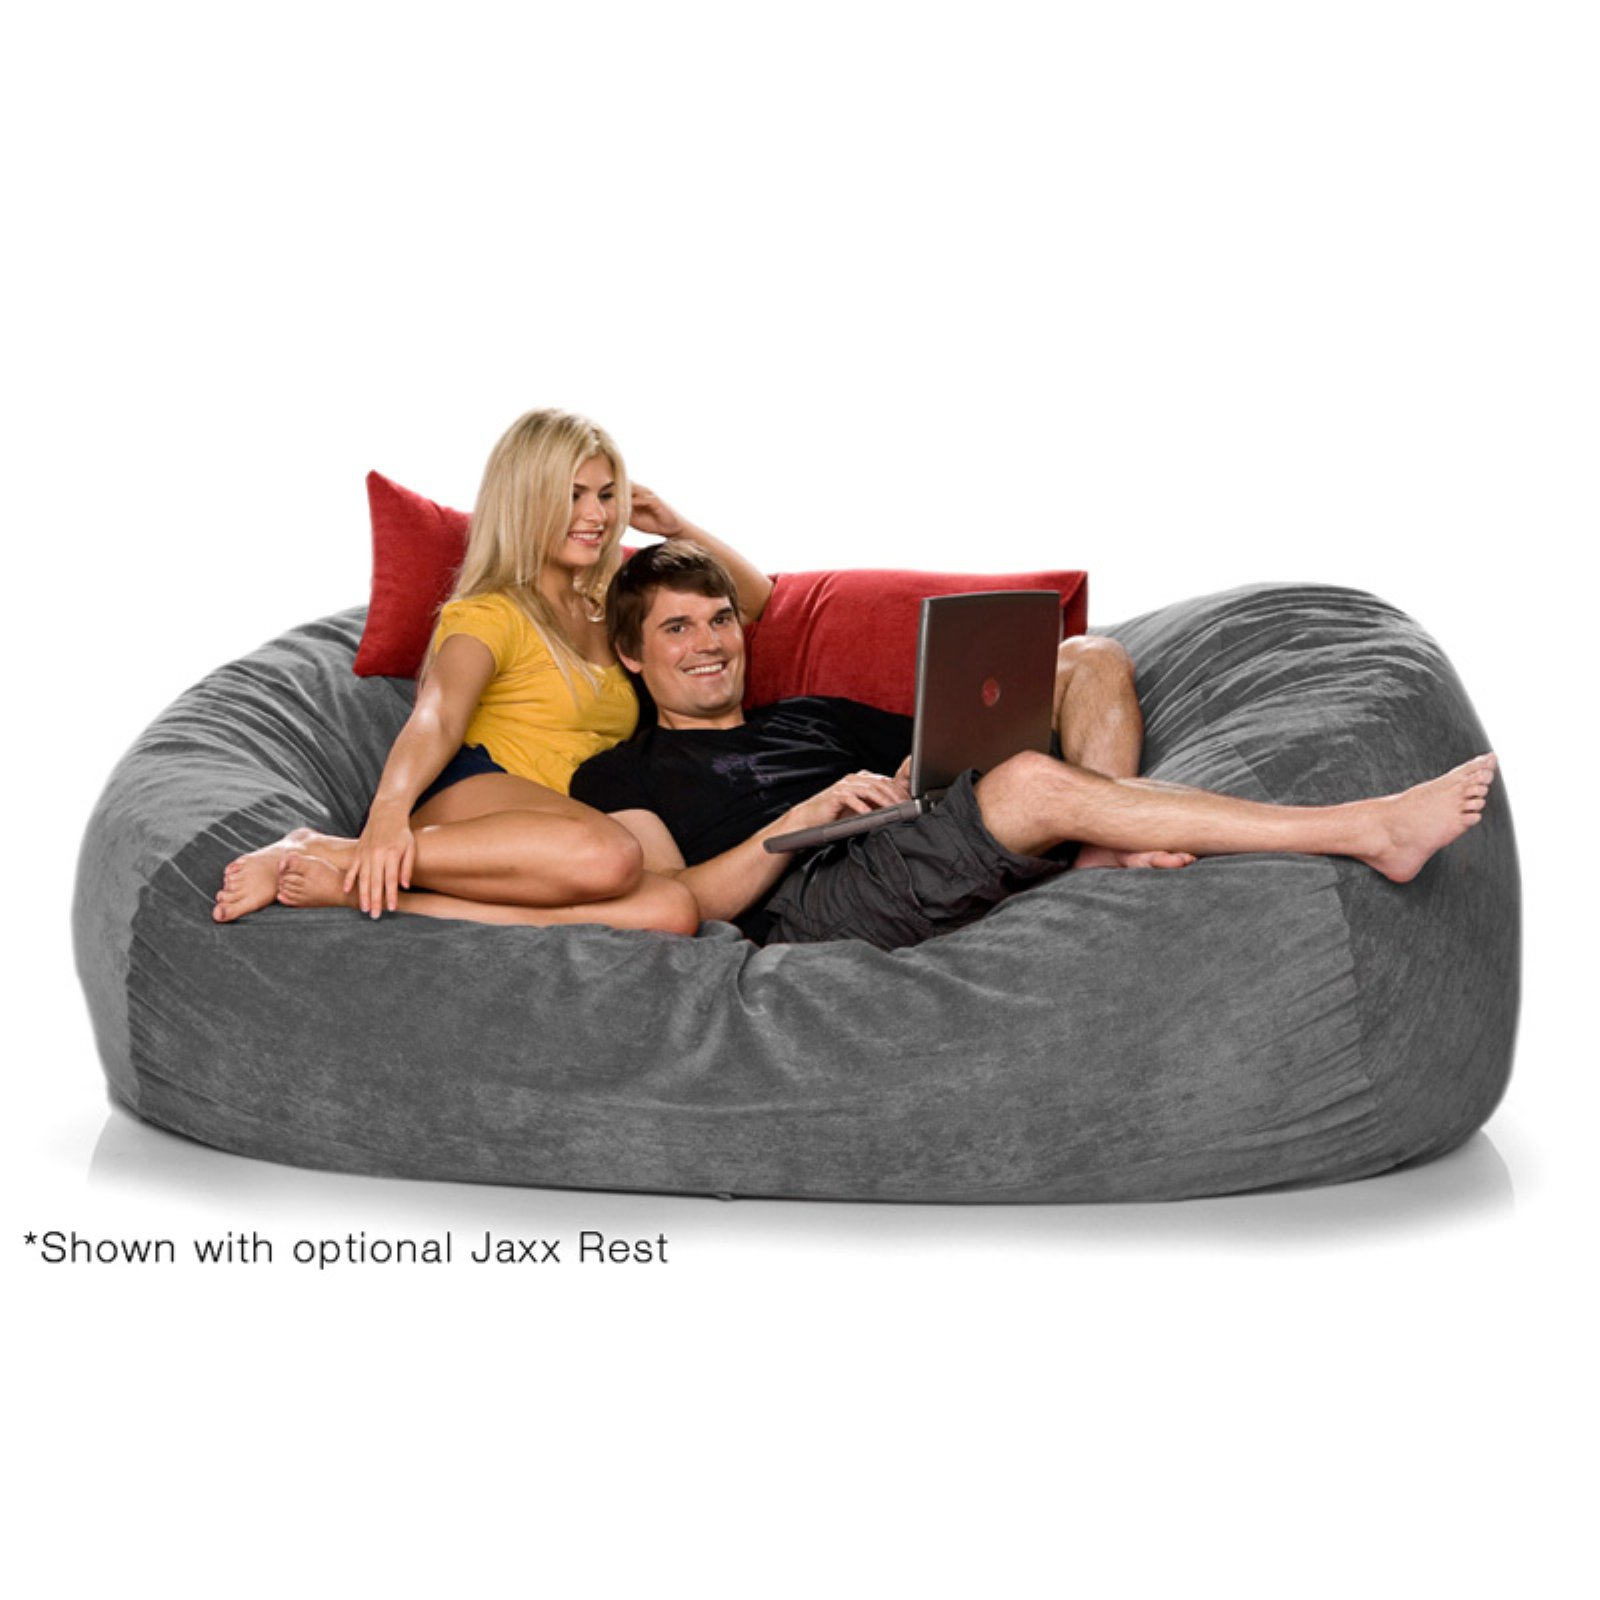 Jaxx 7.5 ft Lounger Microsuede Large Foam Sofa